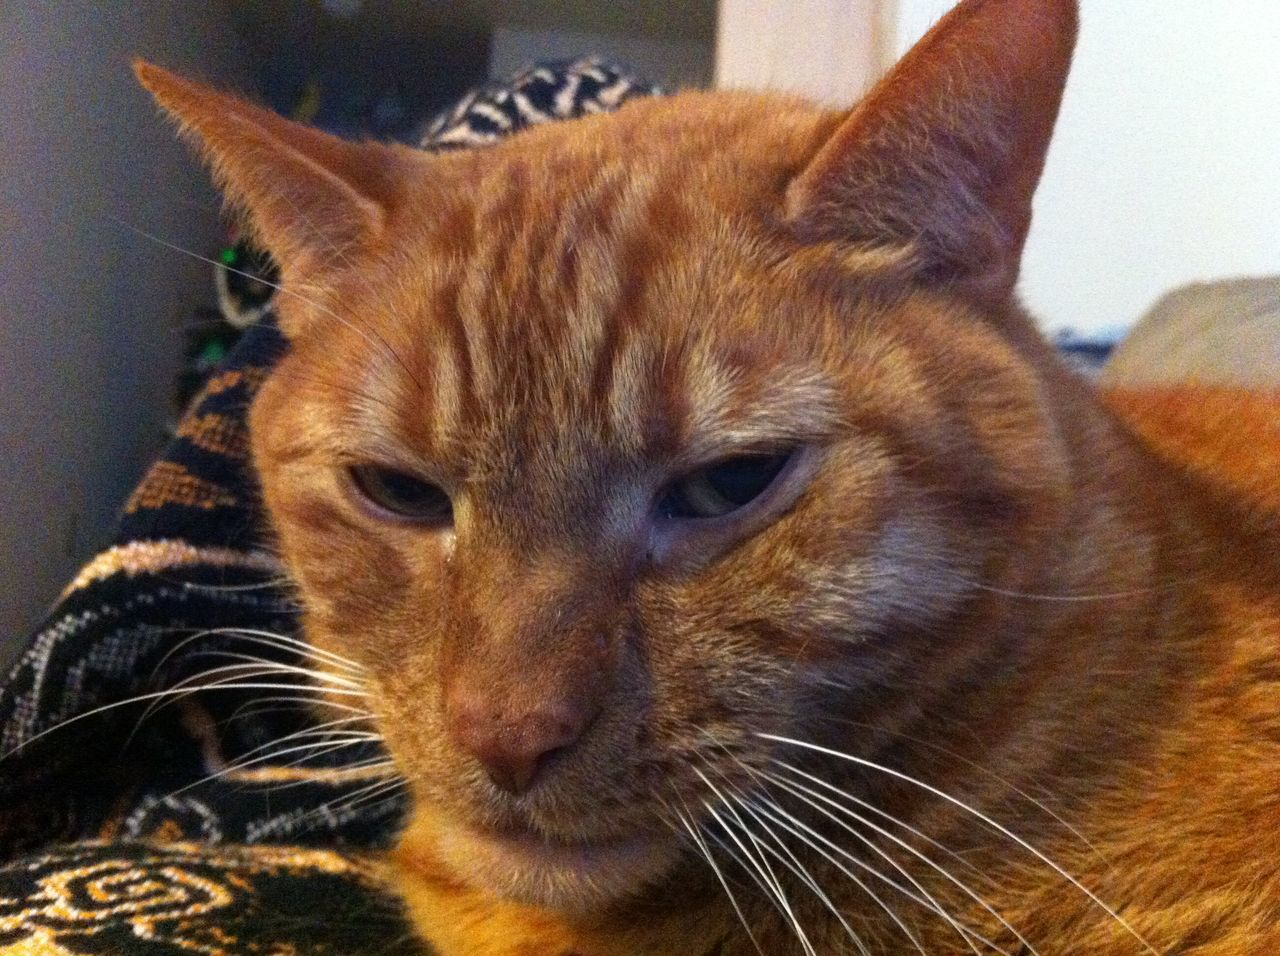 animal themes, cat, mammal, animal, domestic, pets, domestic animals, one animal, domestic cat, feline, whisker, close-up, vertebrate, indoors, no people, focus on foreground, animal head, animal body part, looking, relaxation, ginger cat, animal eye